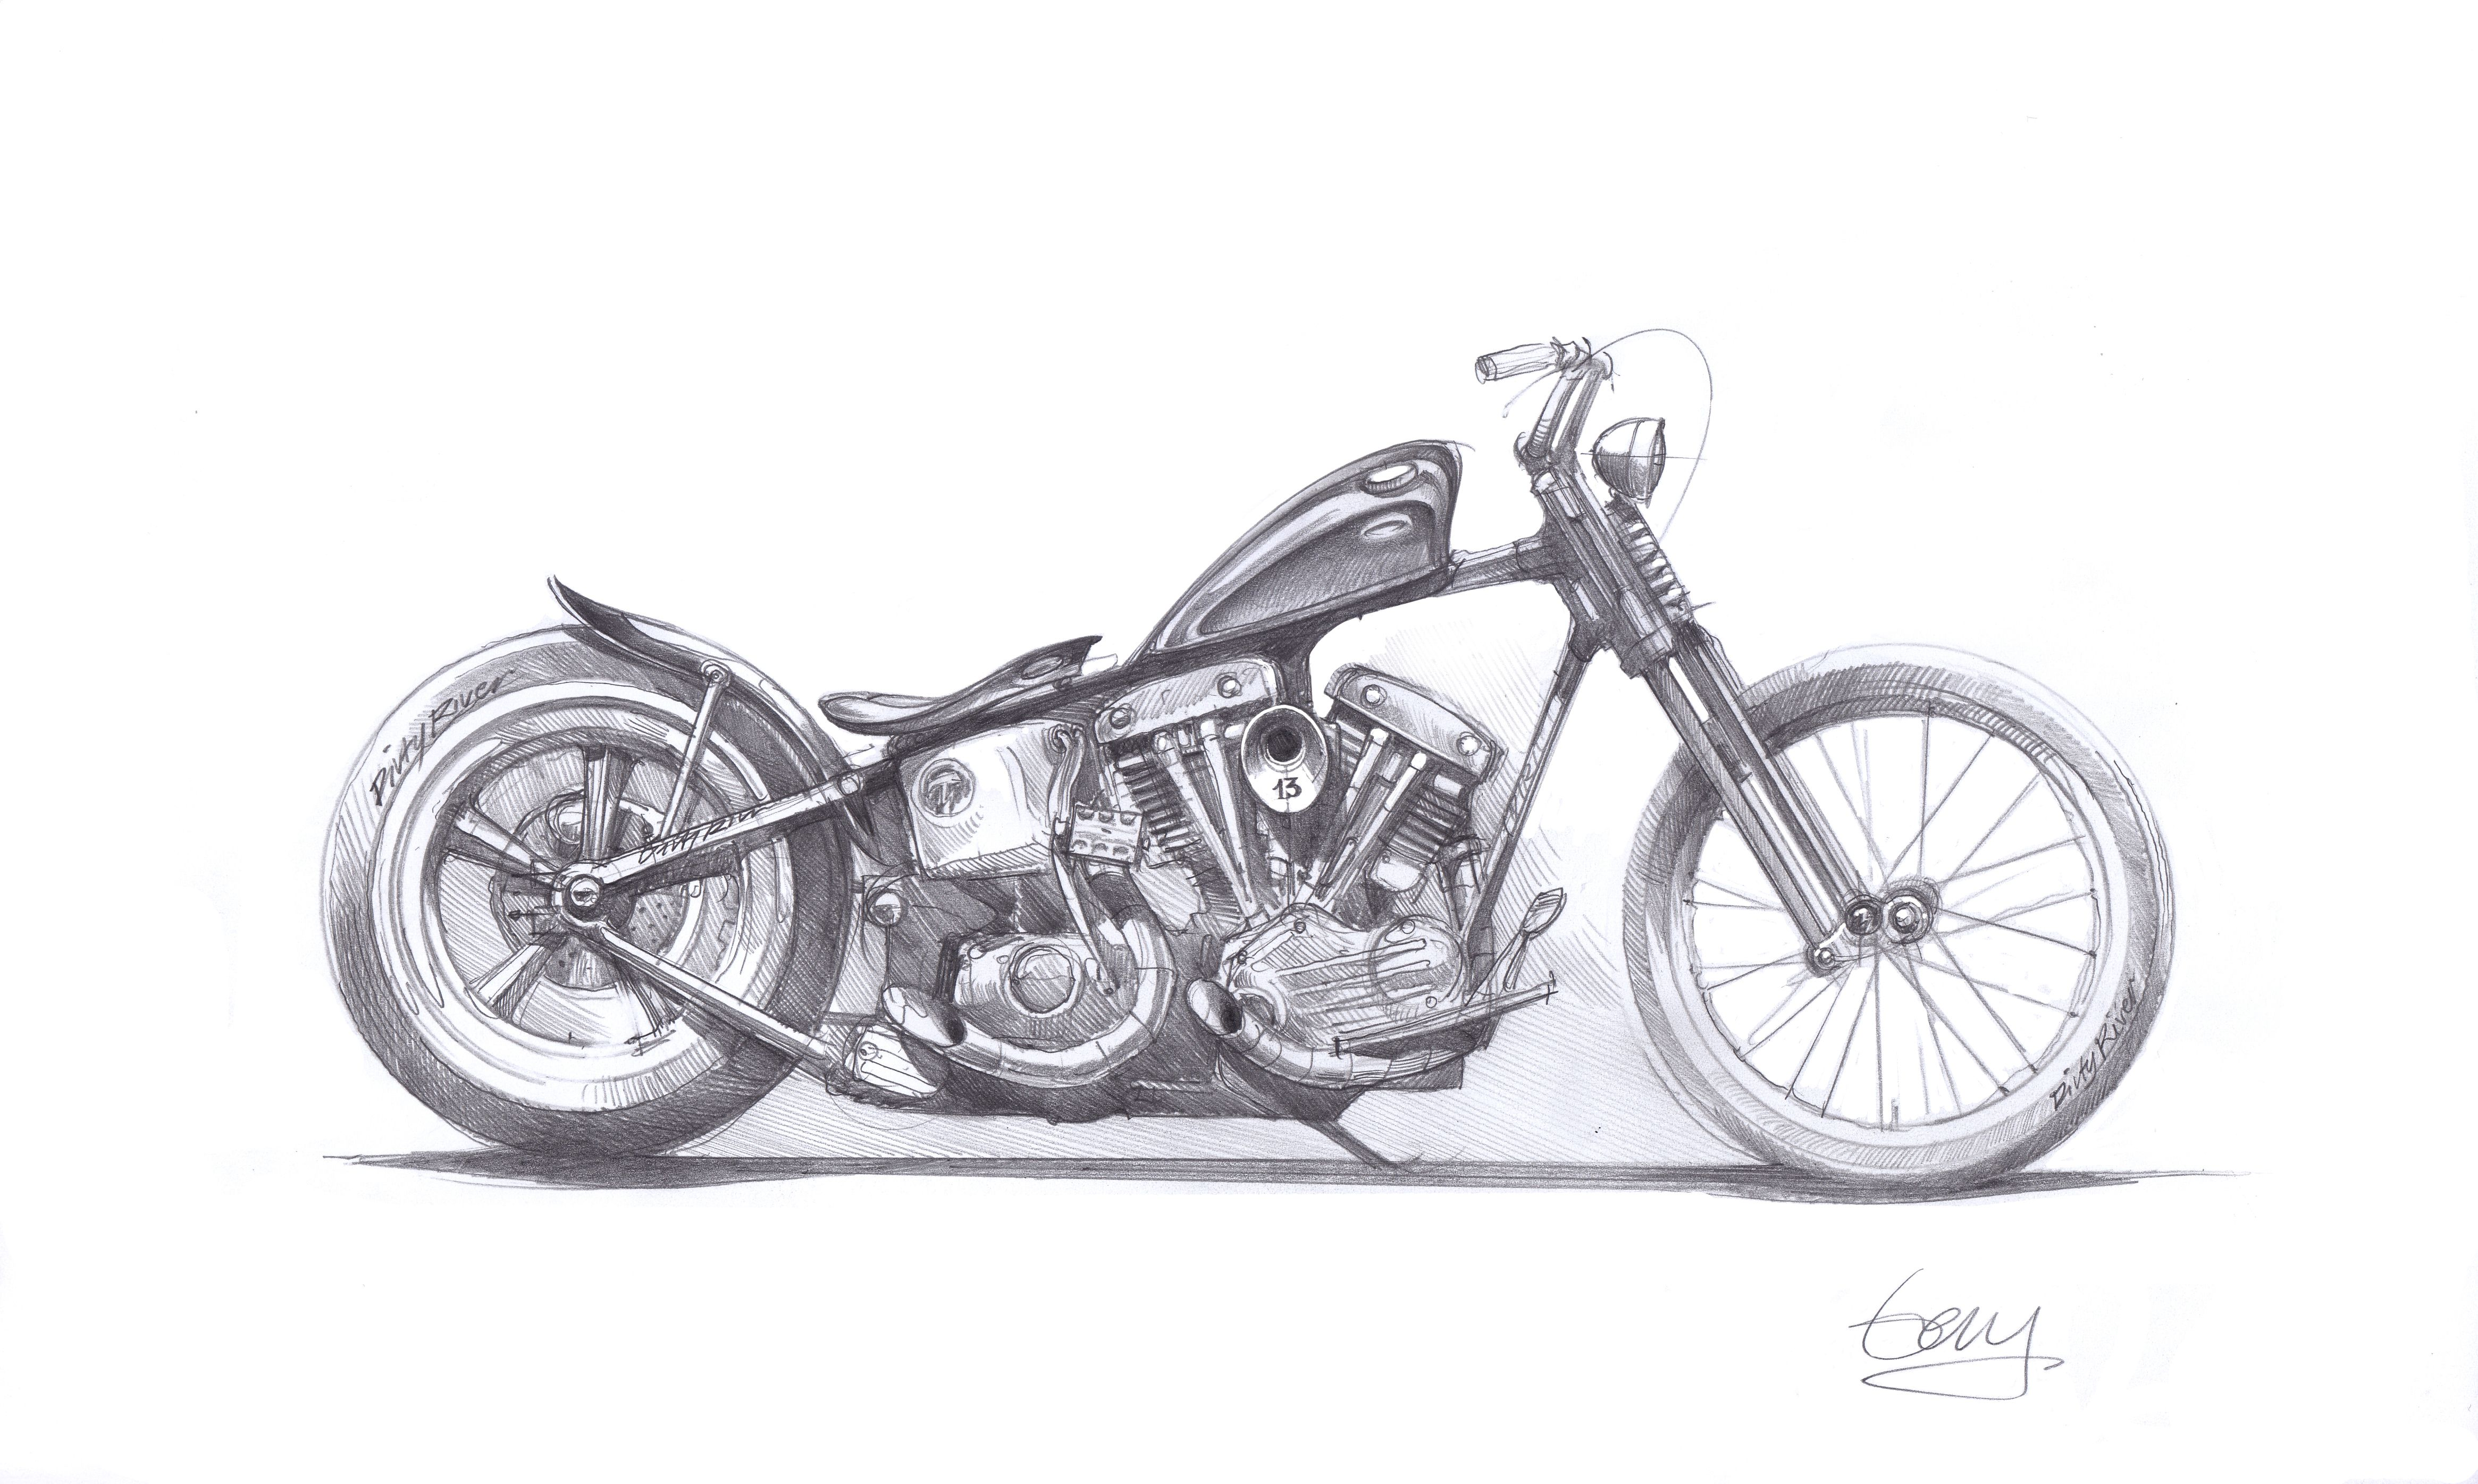 This is a Harley Davidson in Japan bobber style with hardtail frame ...